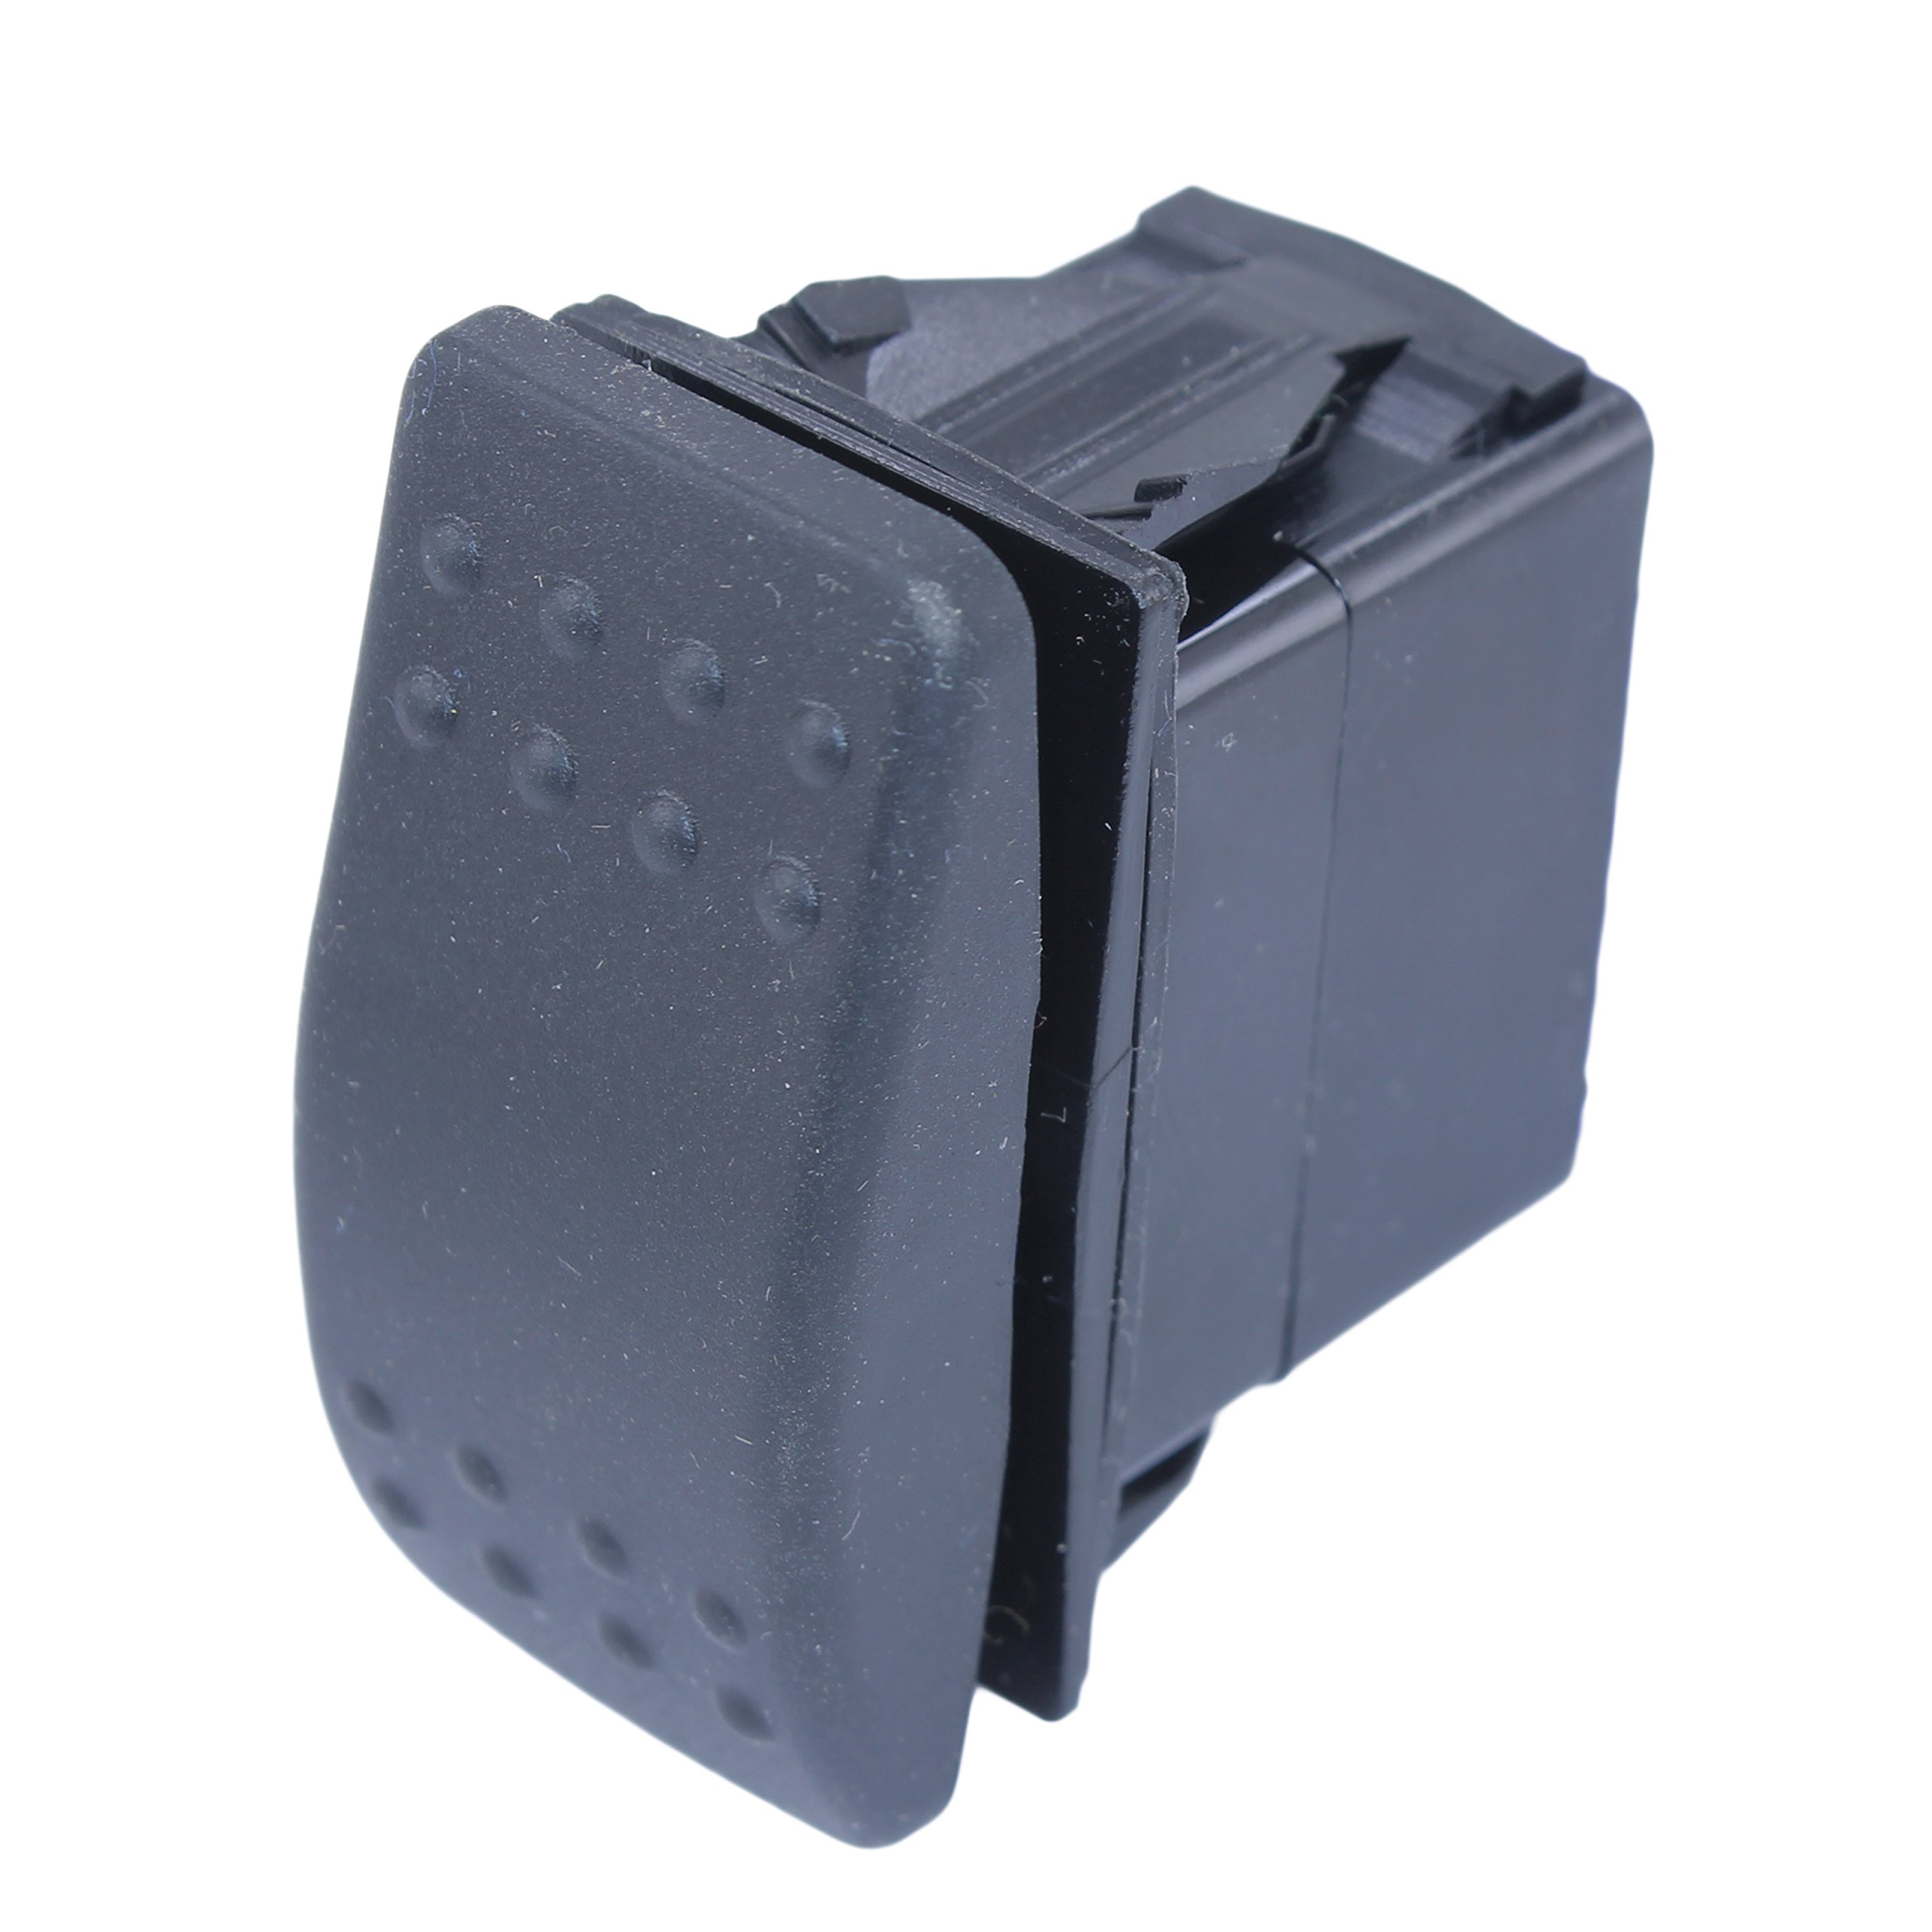 DC Momentary Reversing Rocker Switch (double pole double throw)